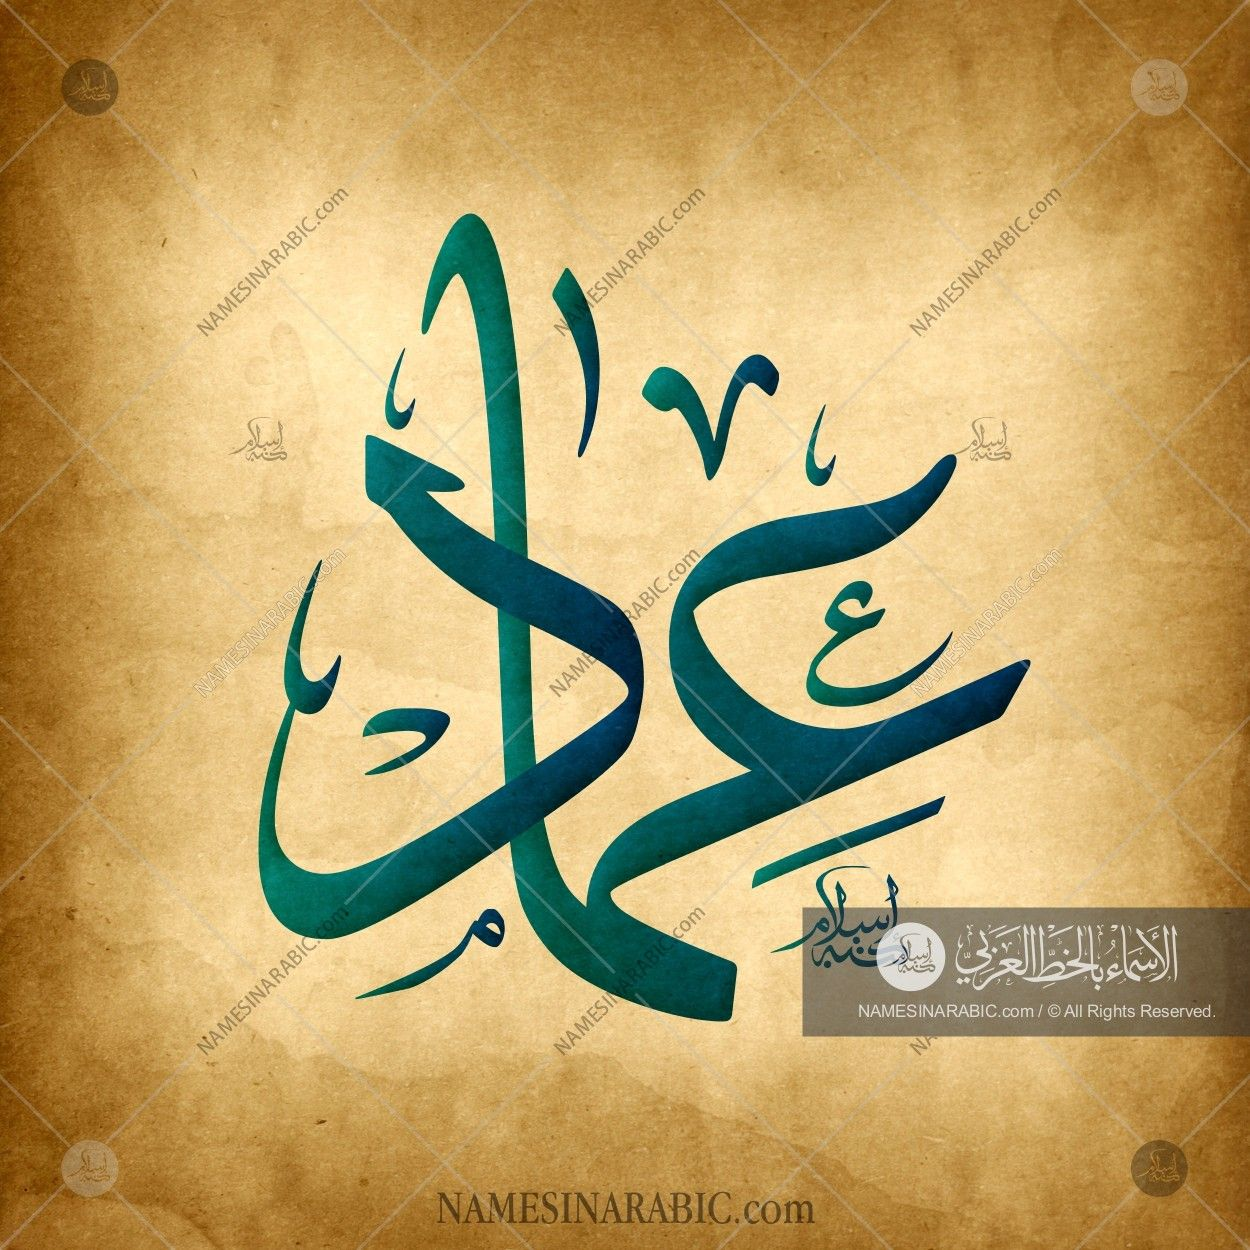 Imad عماد Names In Arabic Calligraphy Name 931 Calligraphy Name Islamic Art Calligraphy Calligraphy